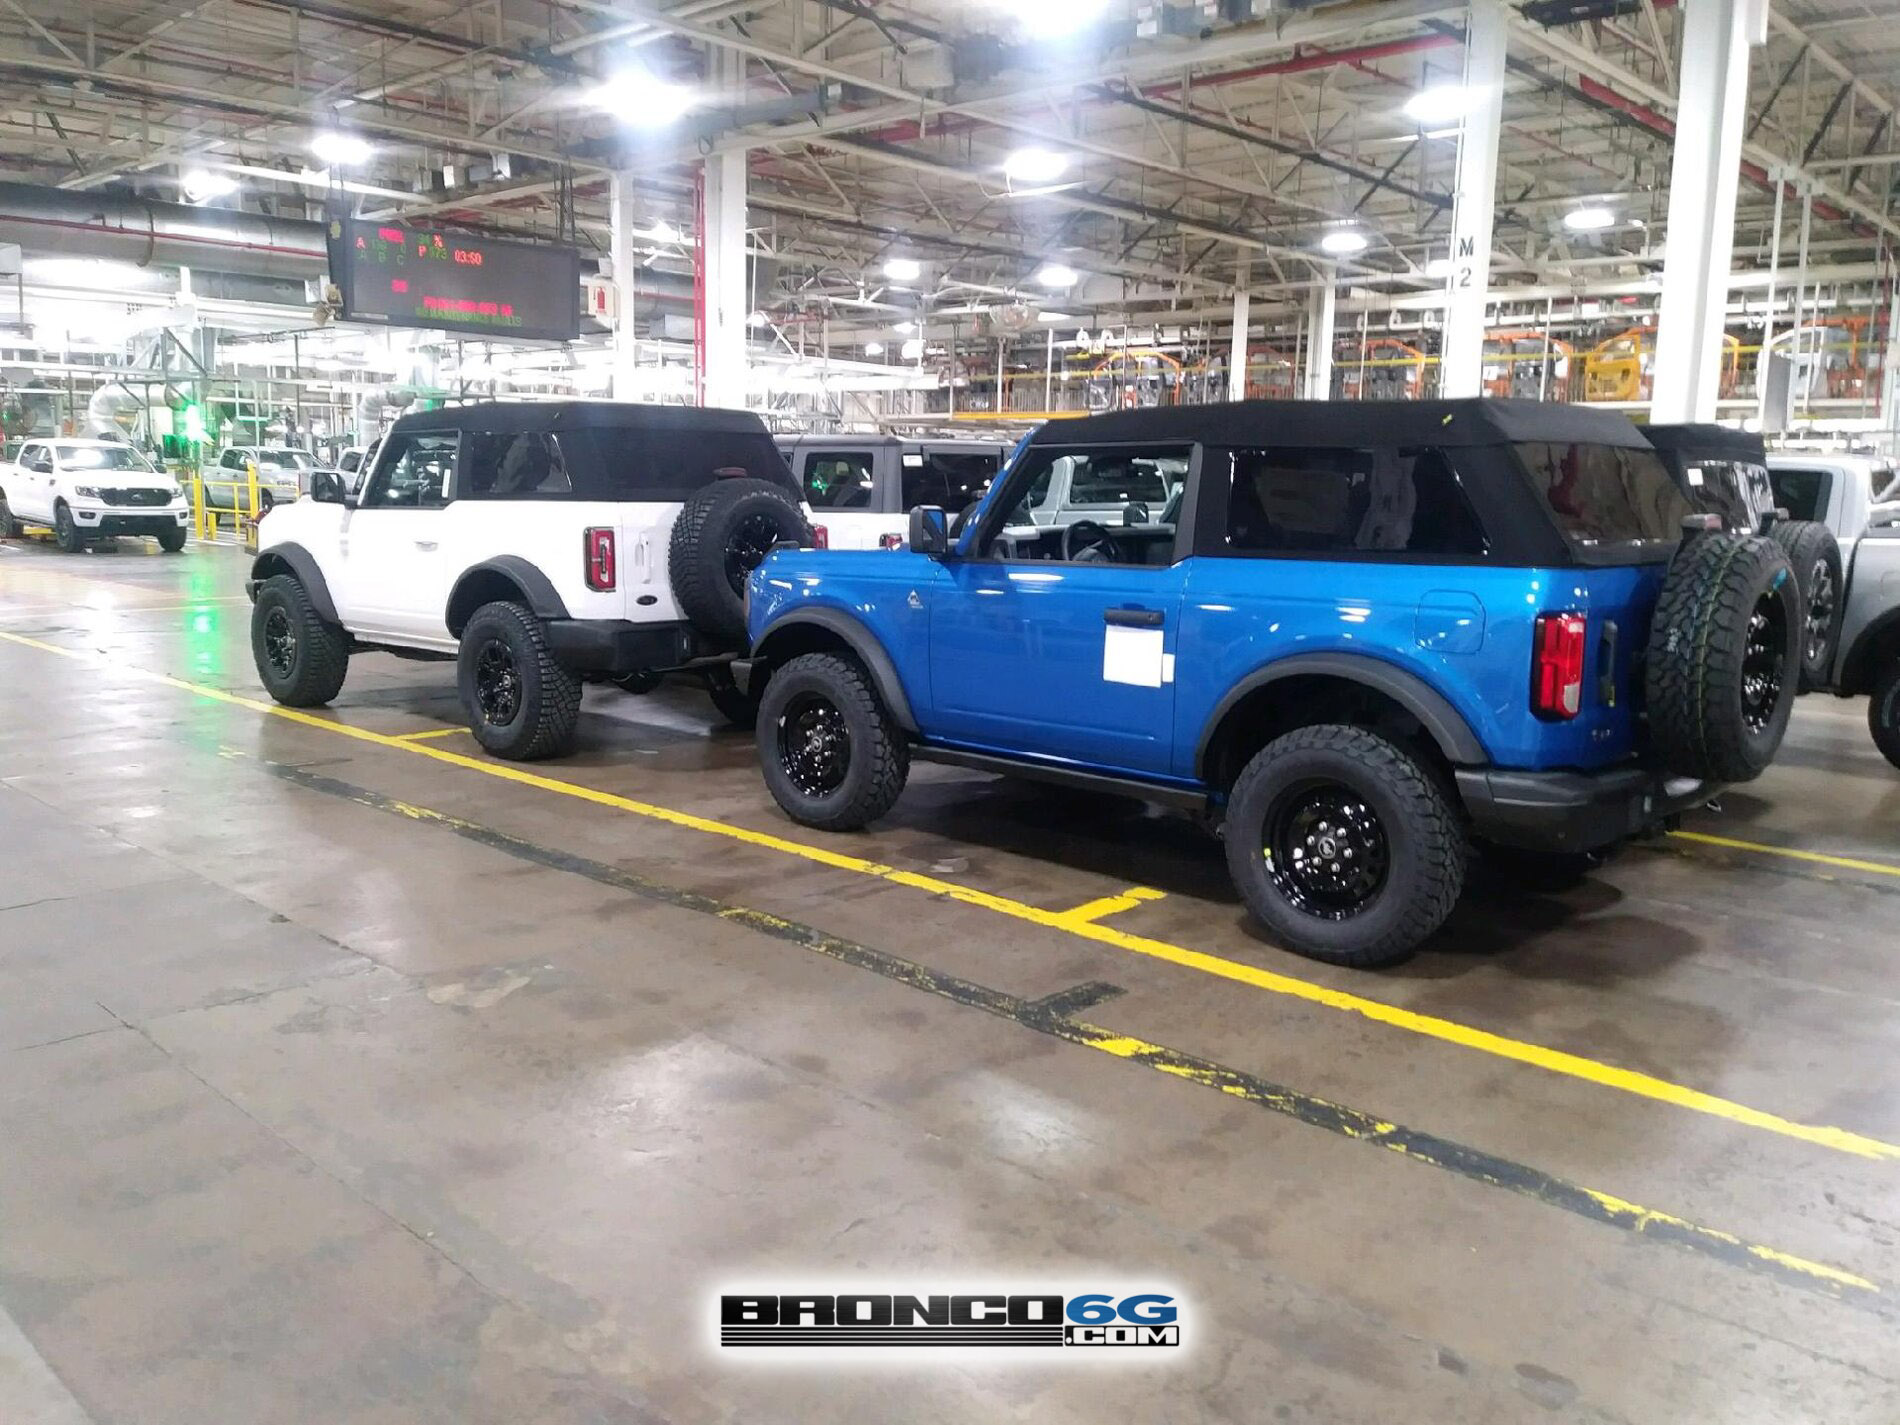 Fastop Fastback Top 2021 Bronco factory MAP aseembly 1.jpg